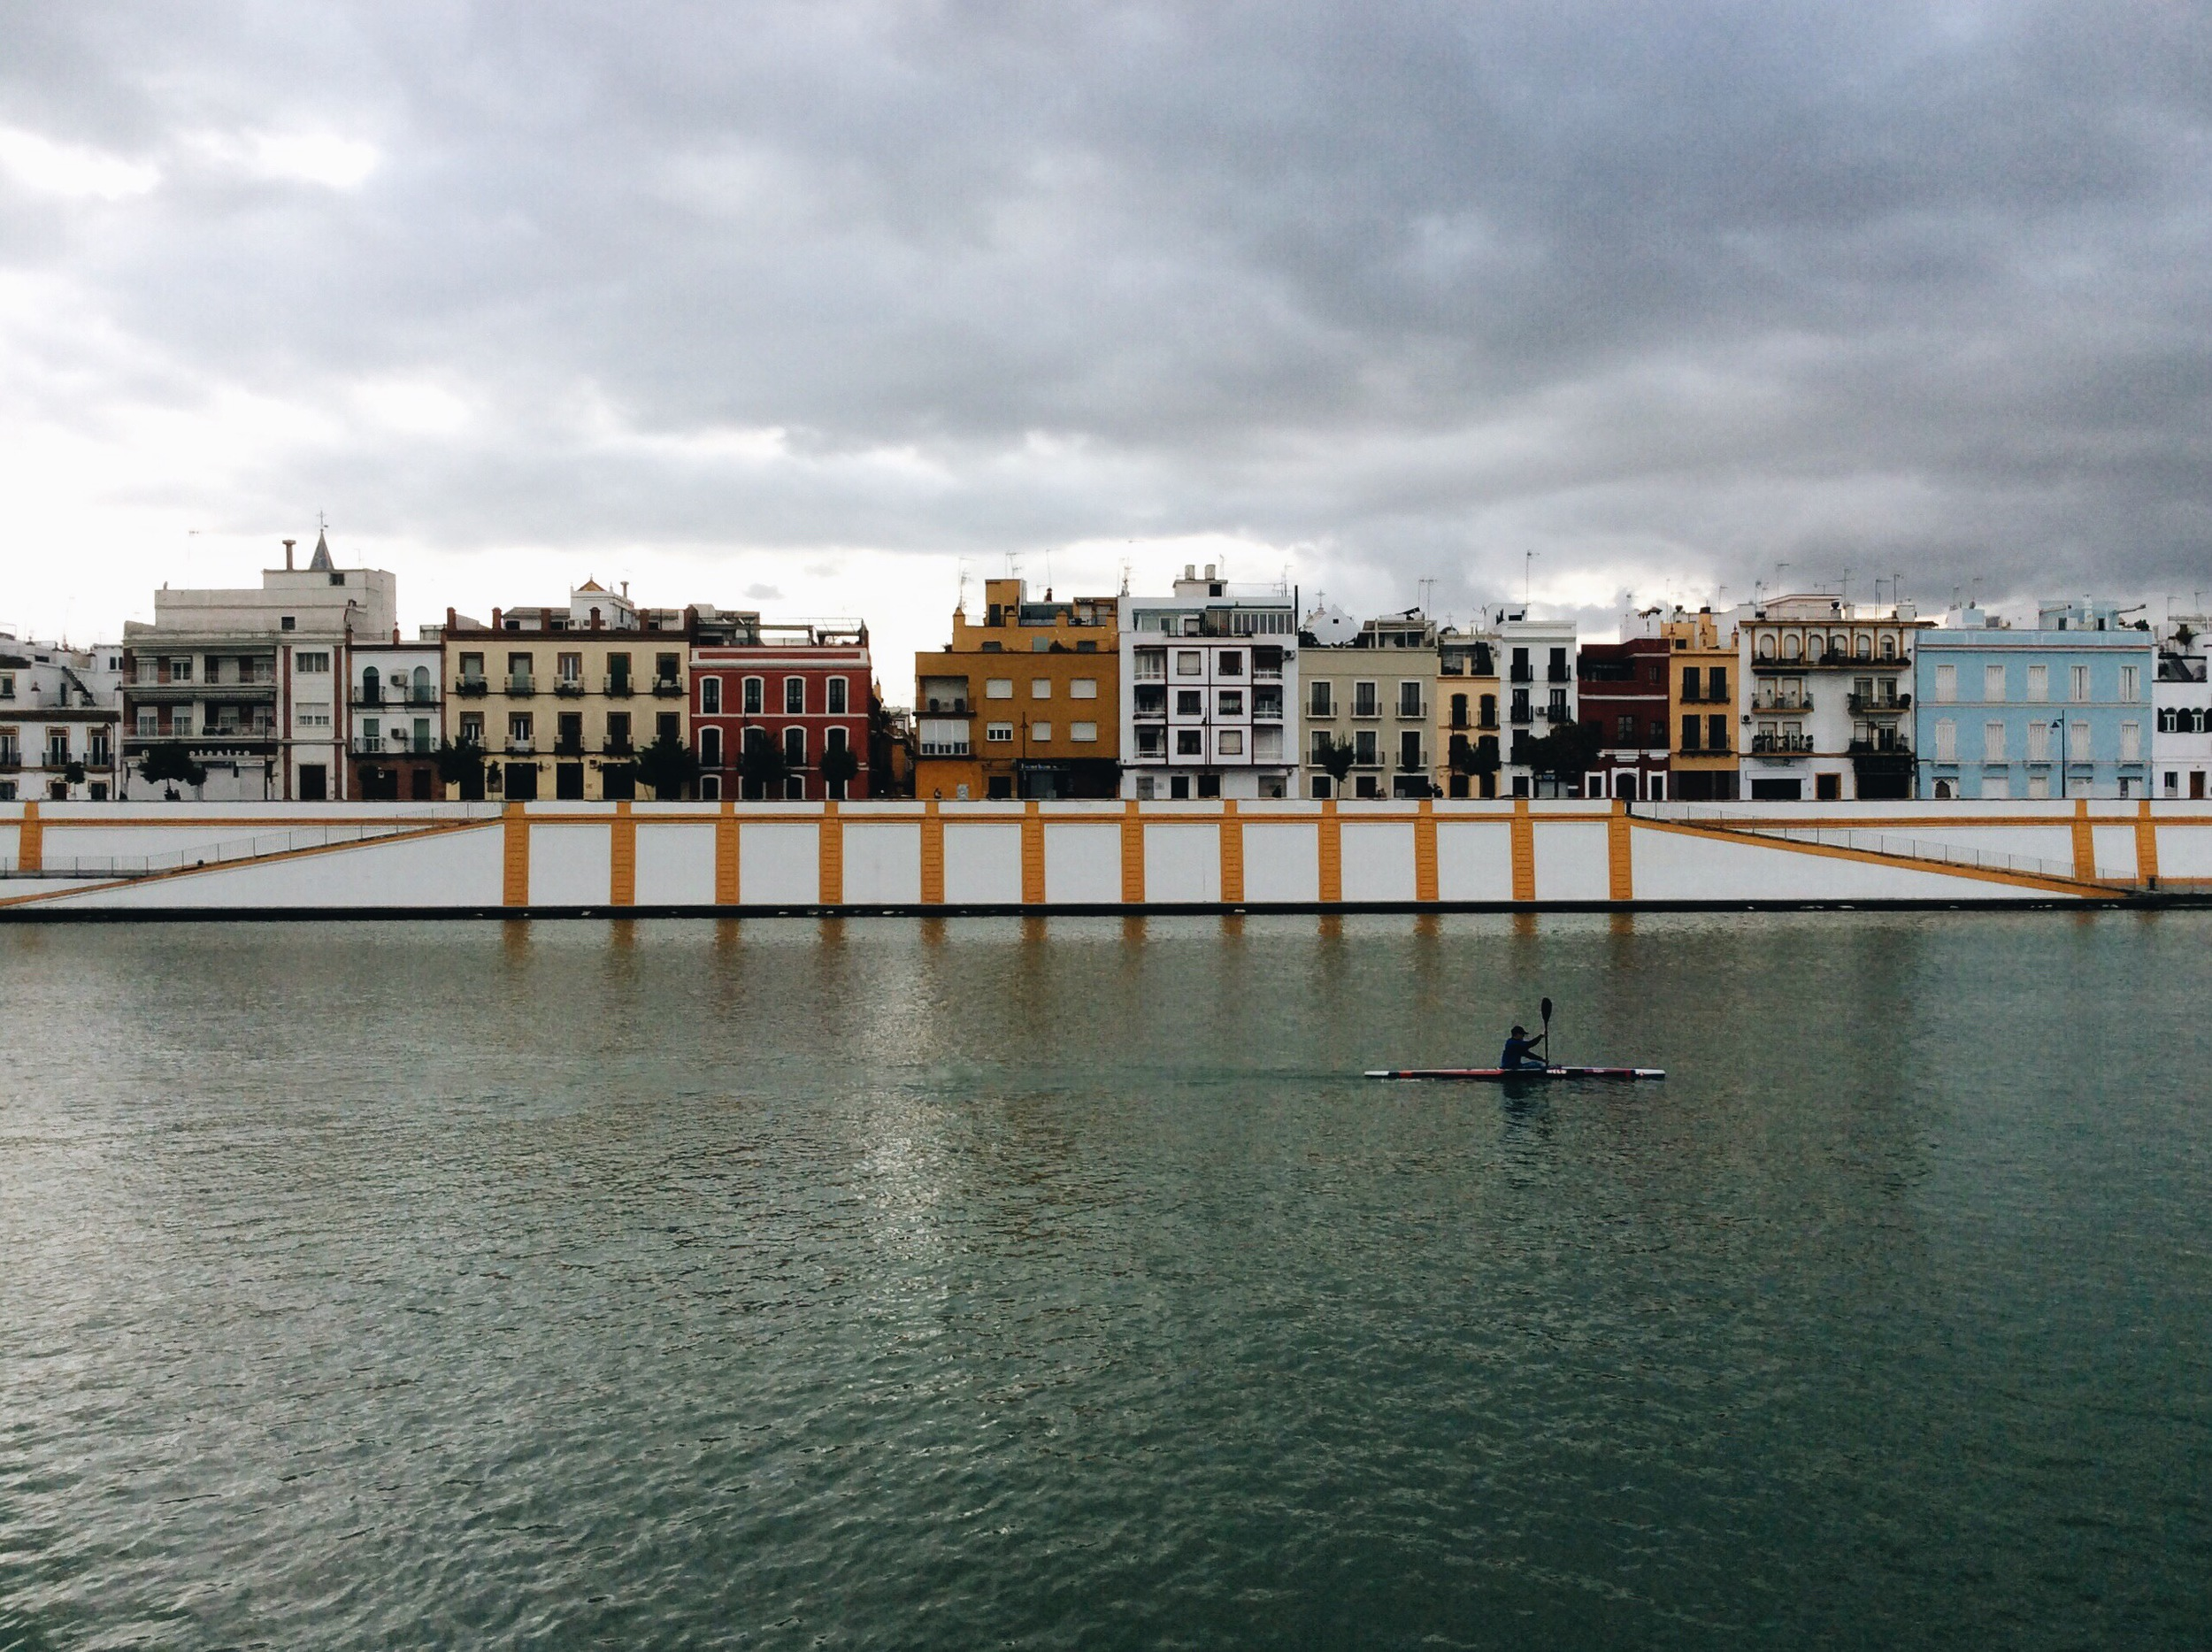 Looking across the river at the Calle Betis